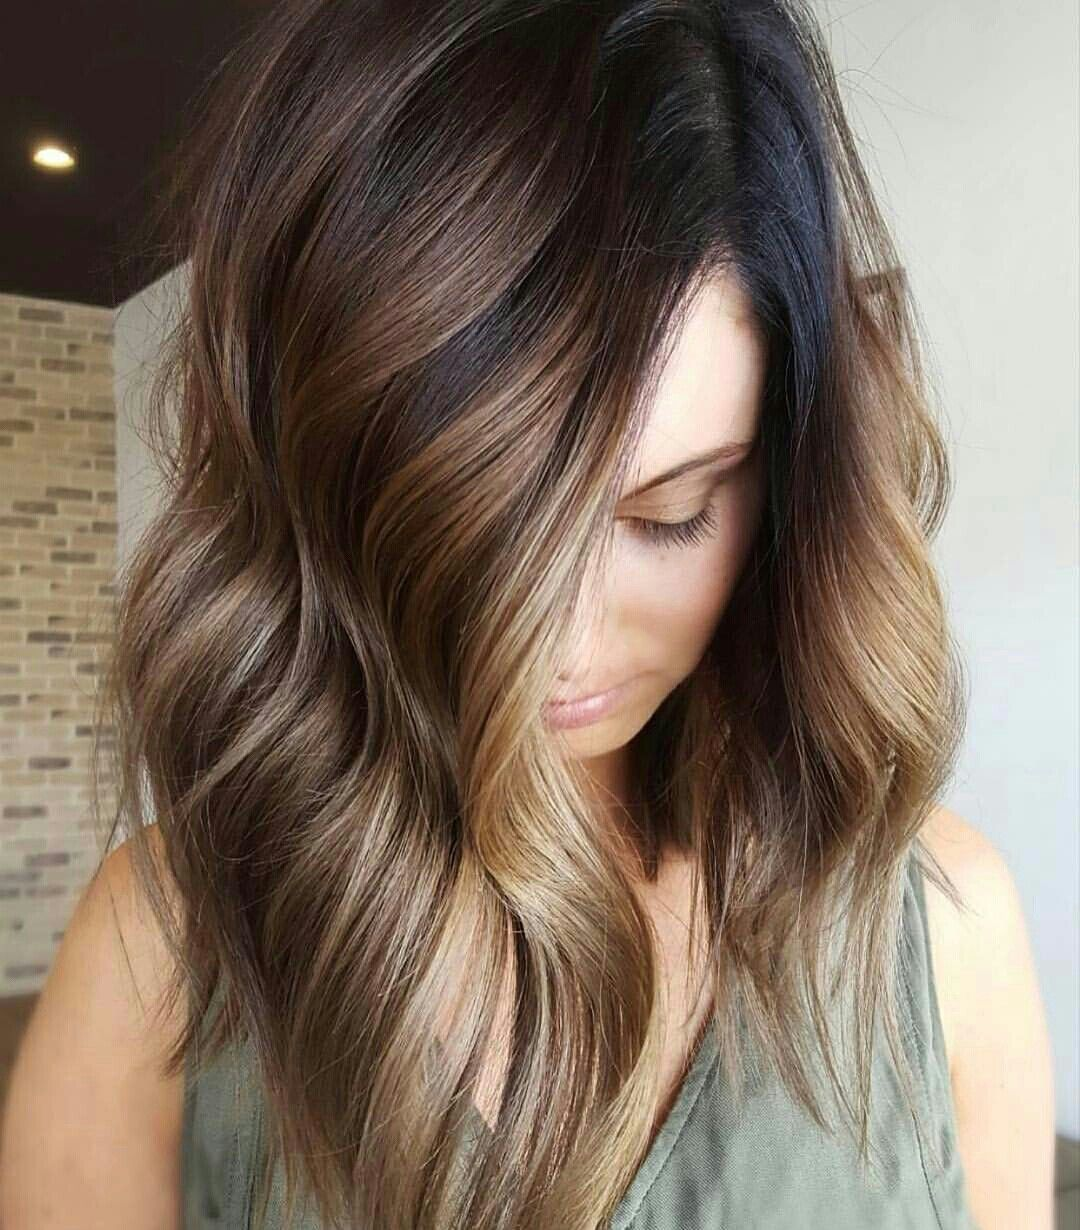 Balayage chatain clair fashion designs - Blond fonce ou chatain clair ...